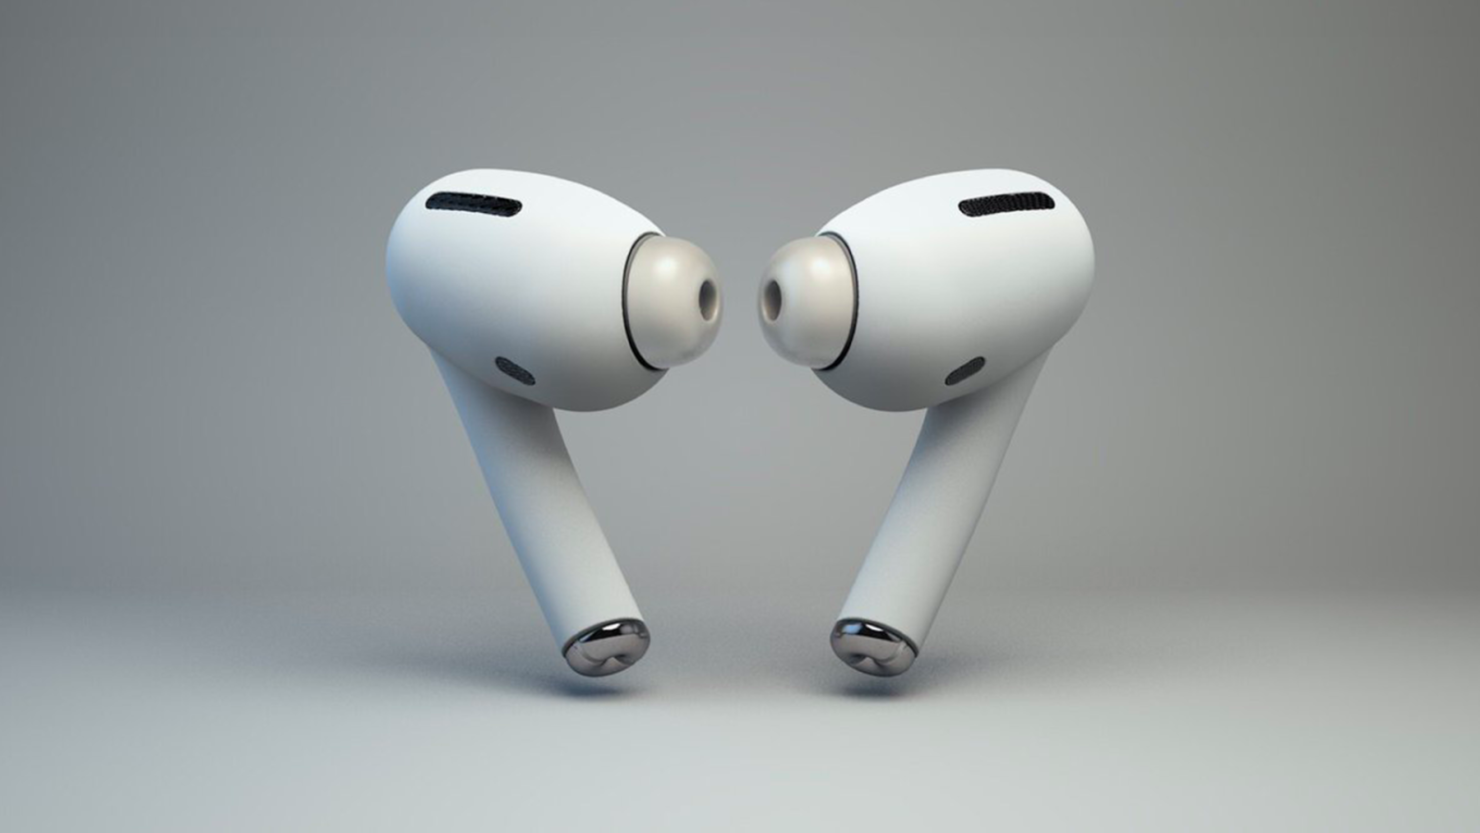 AirPods 3 Expected to Launch in Q3, 2021 as Wireless Earbuds' Production Reportedly Started